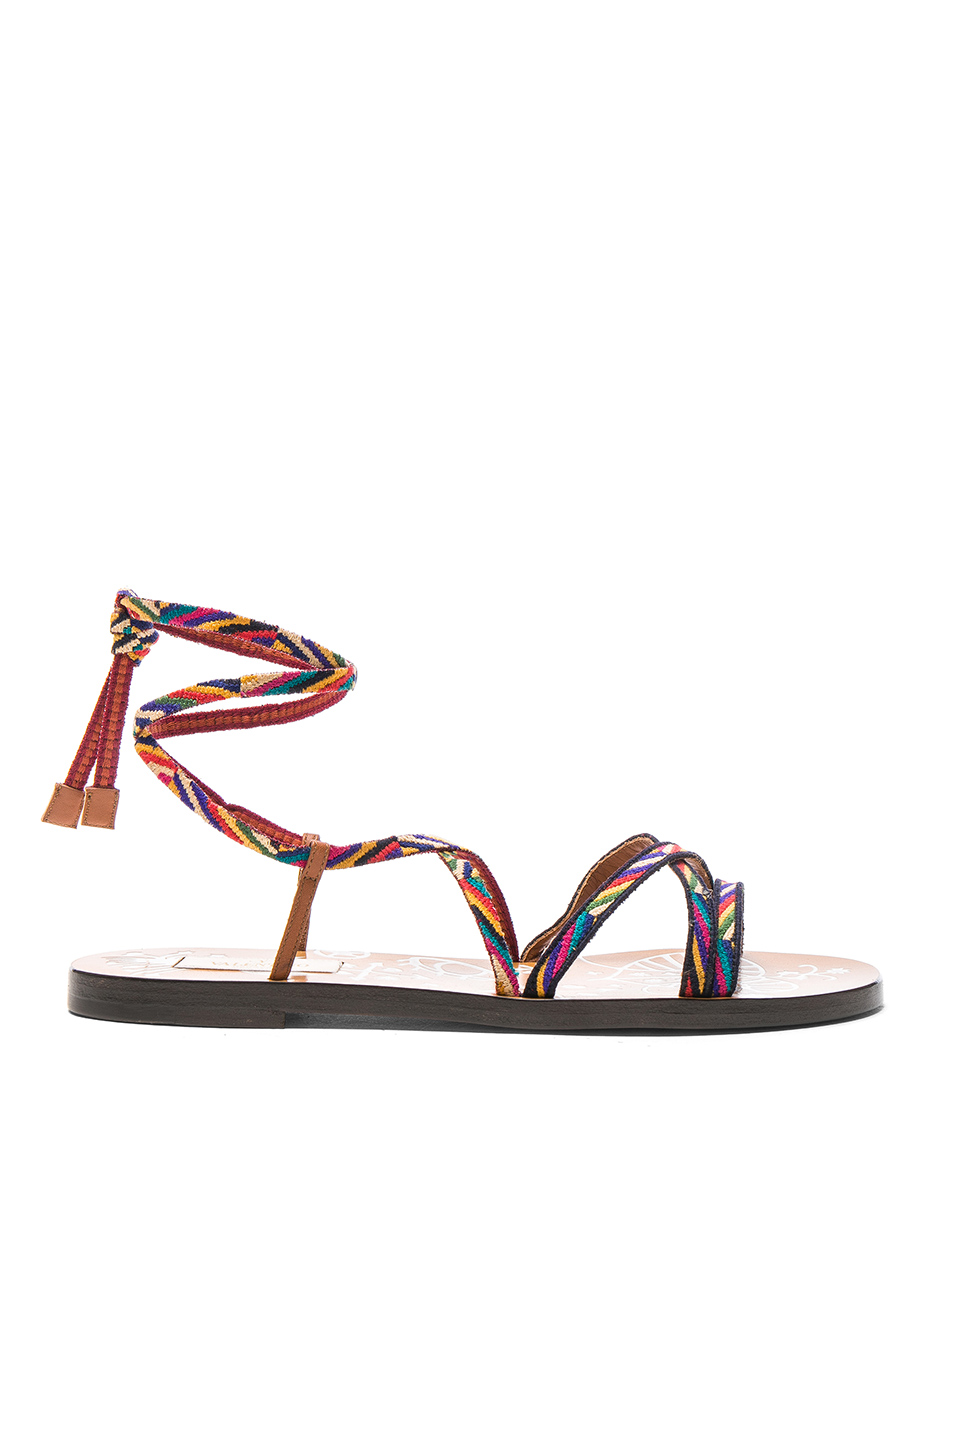 Valentino Embroidered Santeria Sandals in Abstract,Neutrals